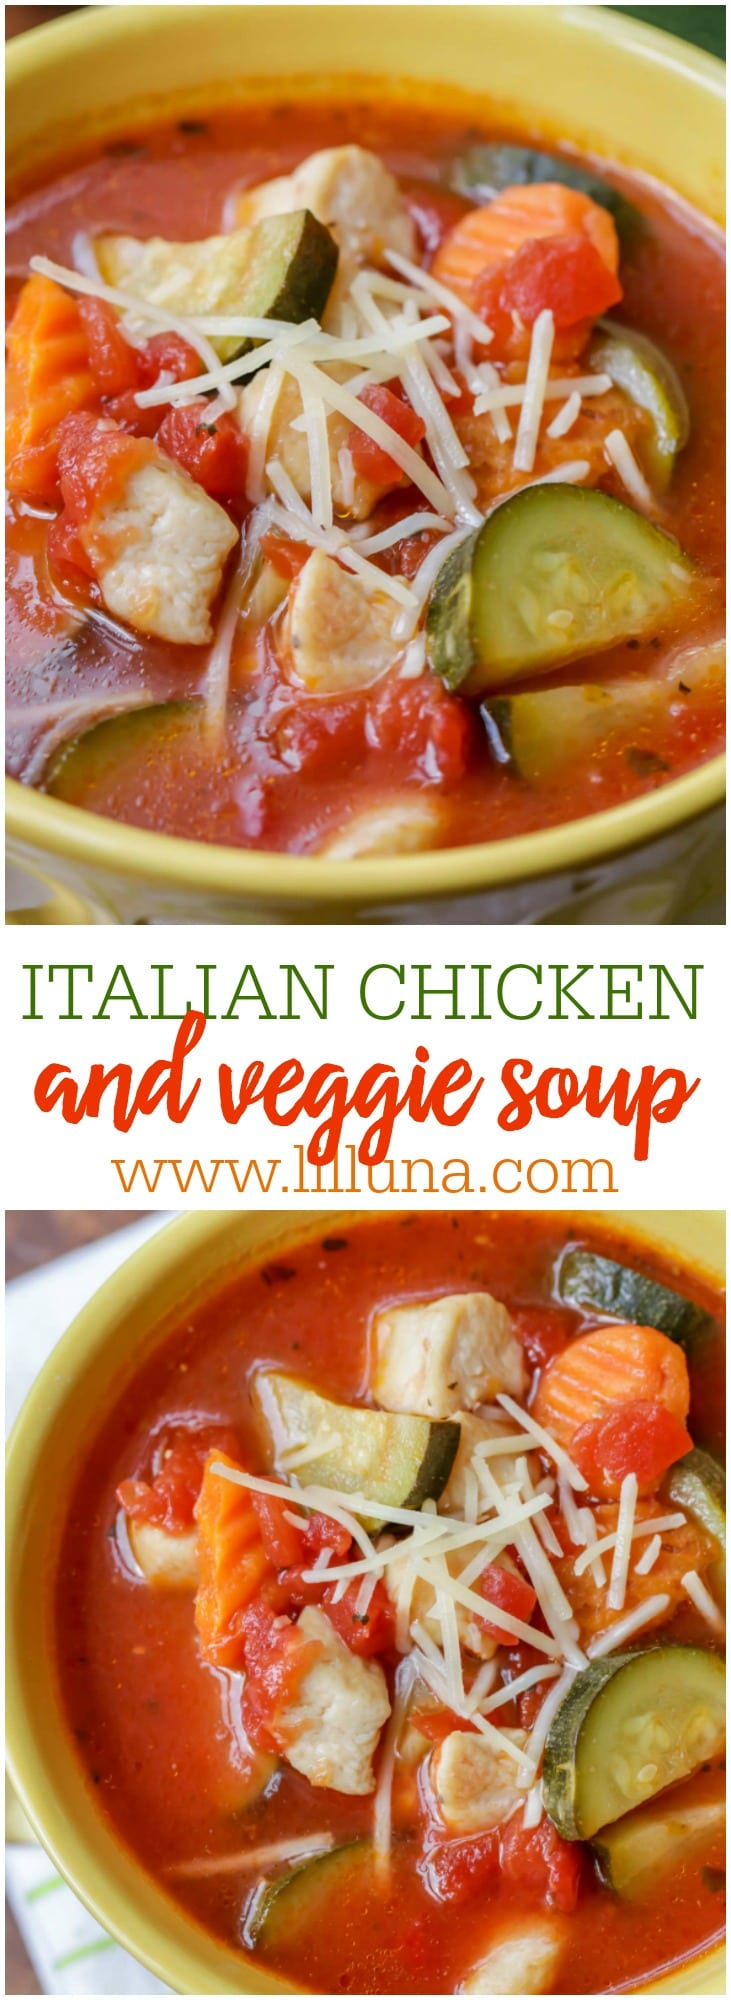 Chicken Vegetable Soup - this hearty soup is packed full of flavor with chicken, tomatoes, carrots, zucchini and cheese!